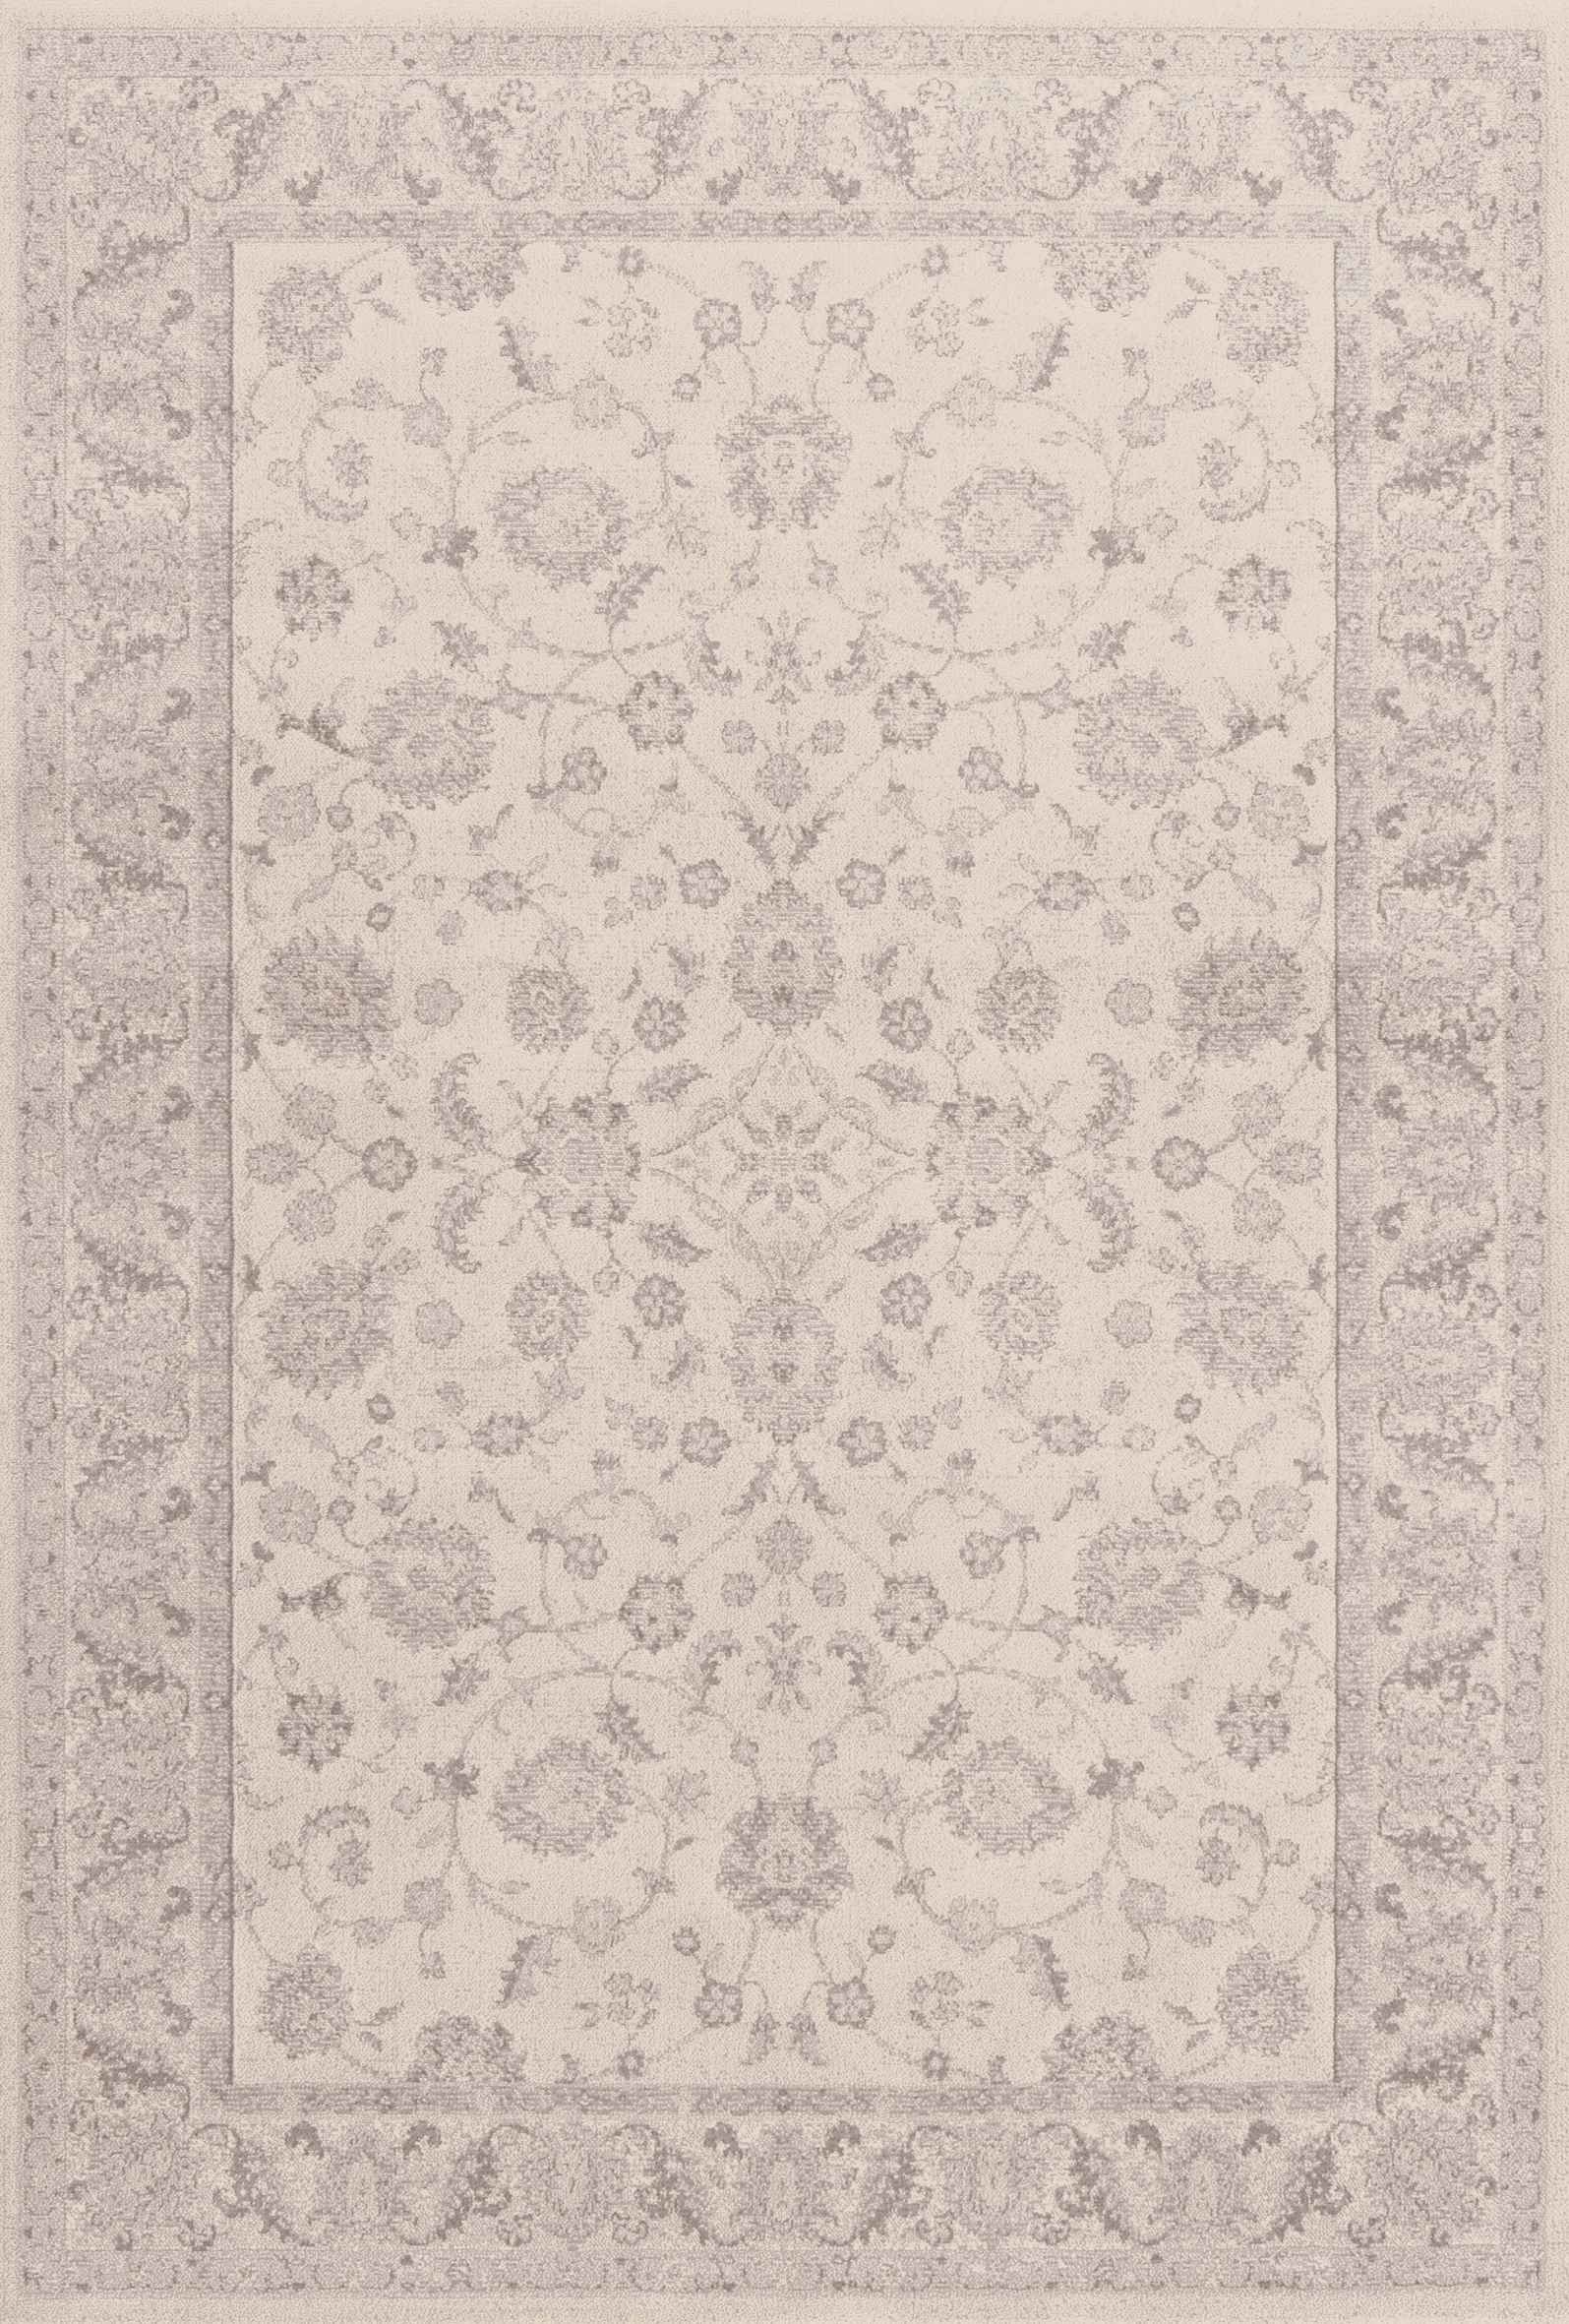 Dynamic Rugs Imperial Classic Cream 619 Area Rug